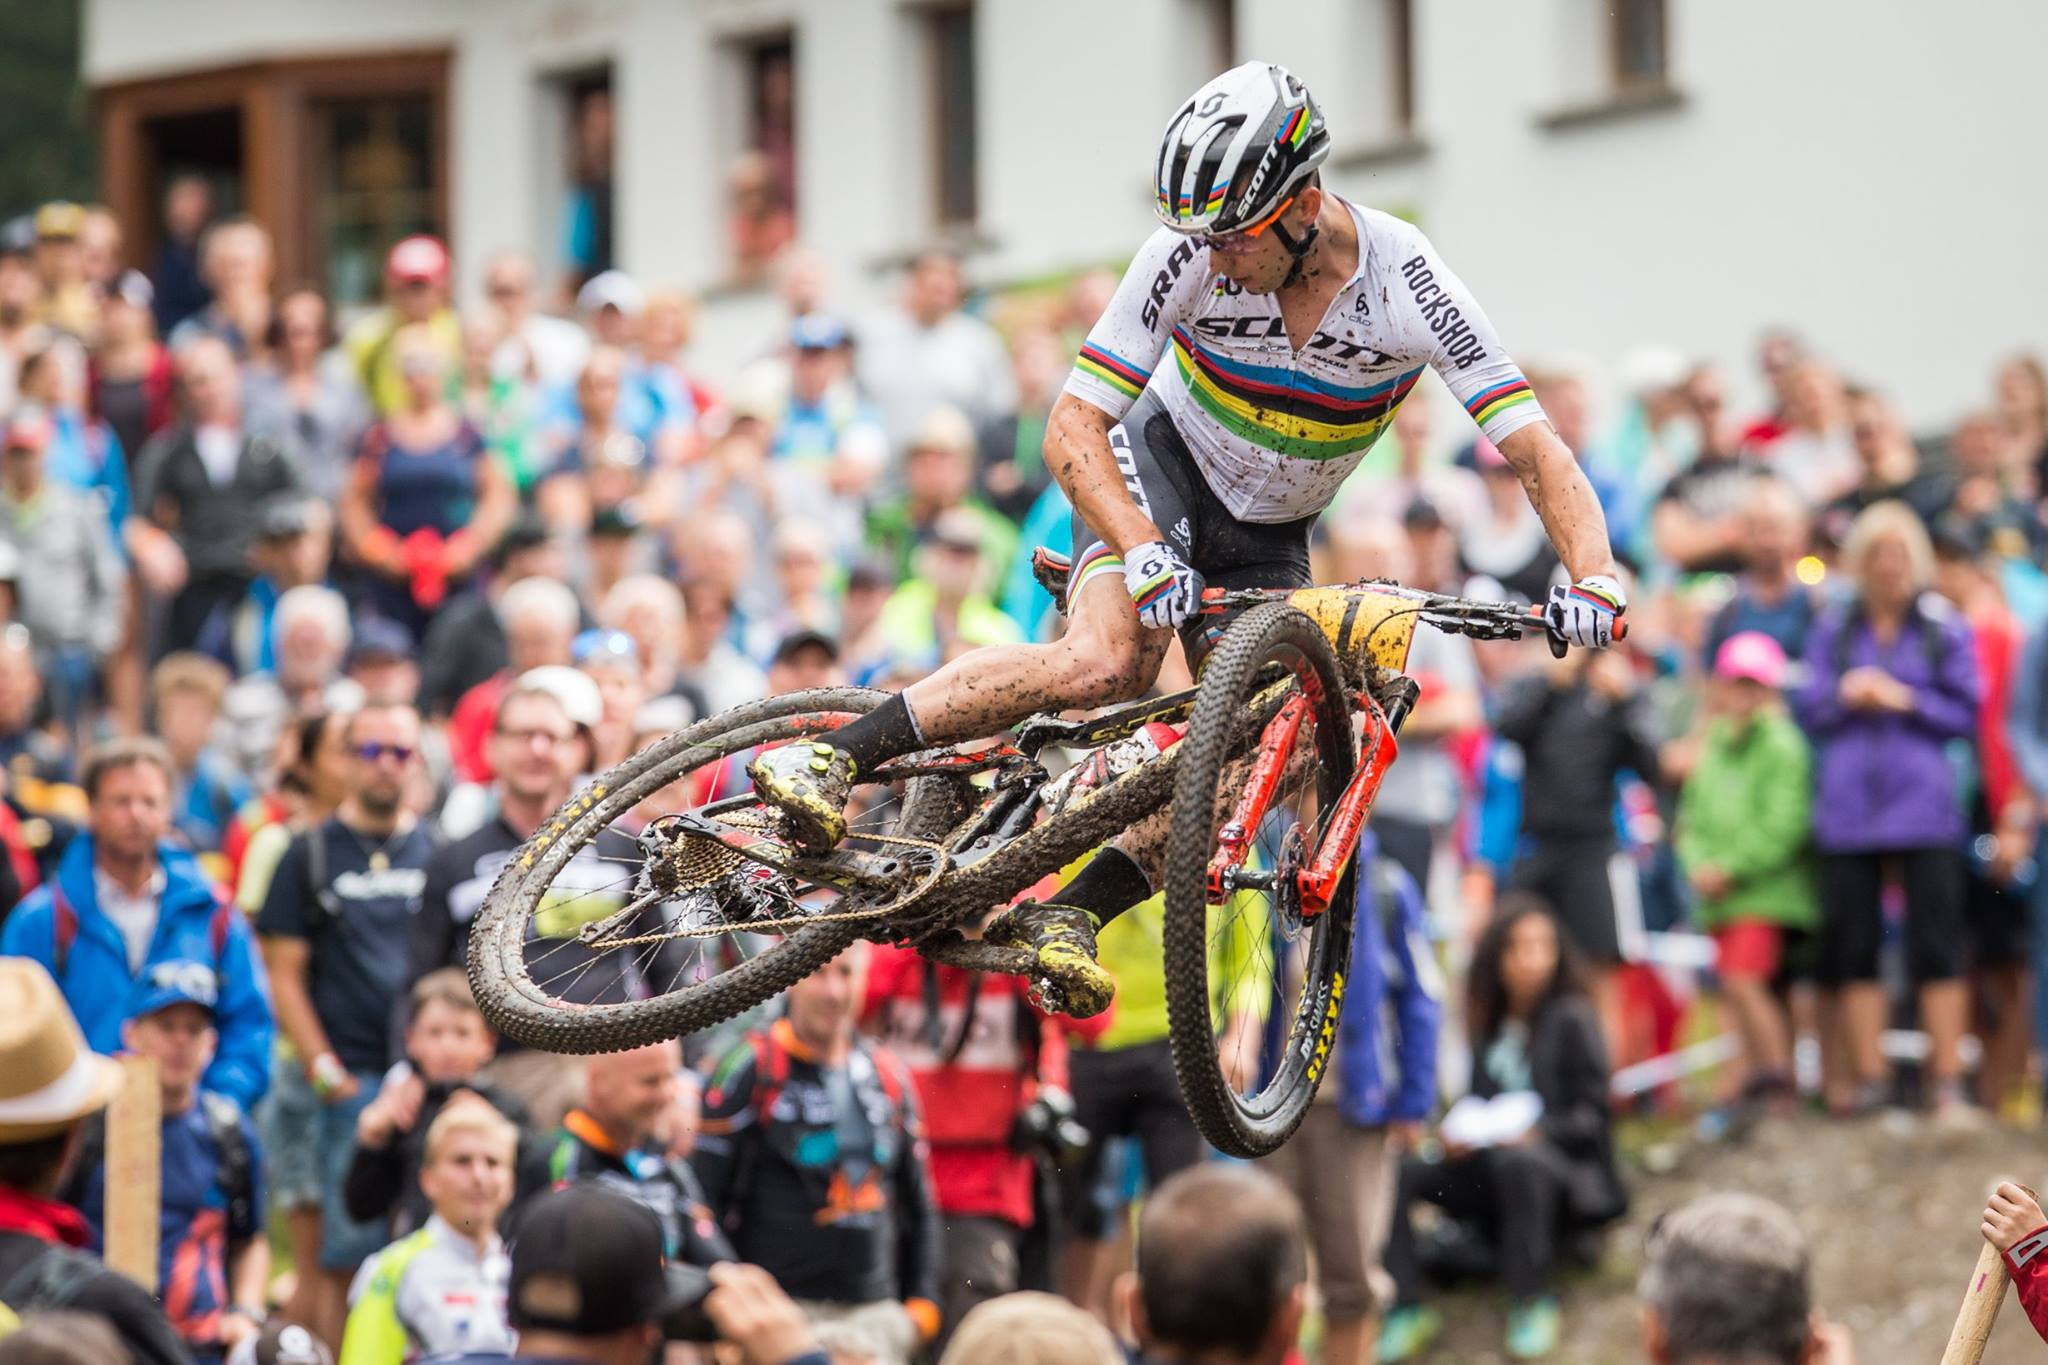 Home rider Nino Schurter is targeting a seventh title at the UCI Mountain Bike World Championships at Lenzerheide in Switzerland ©UCI